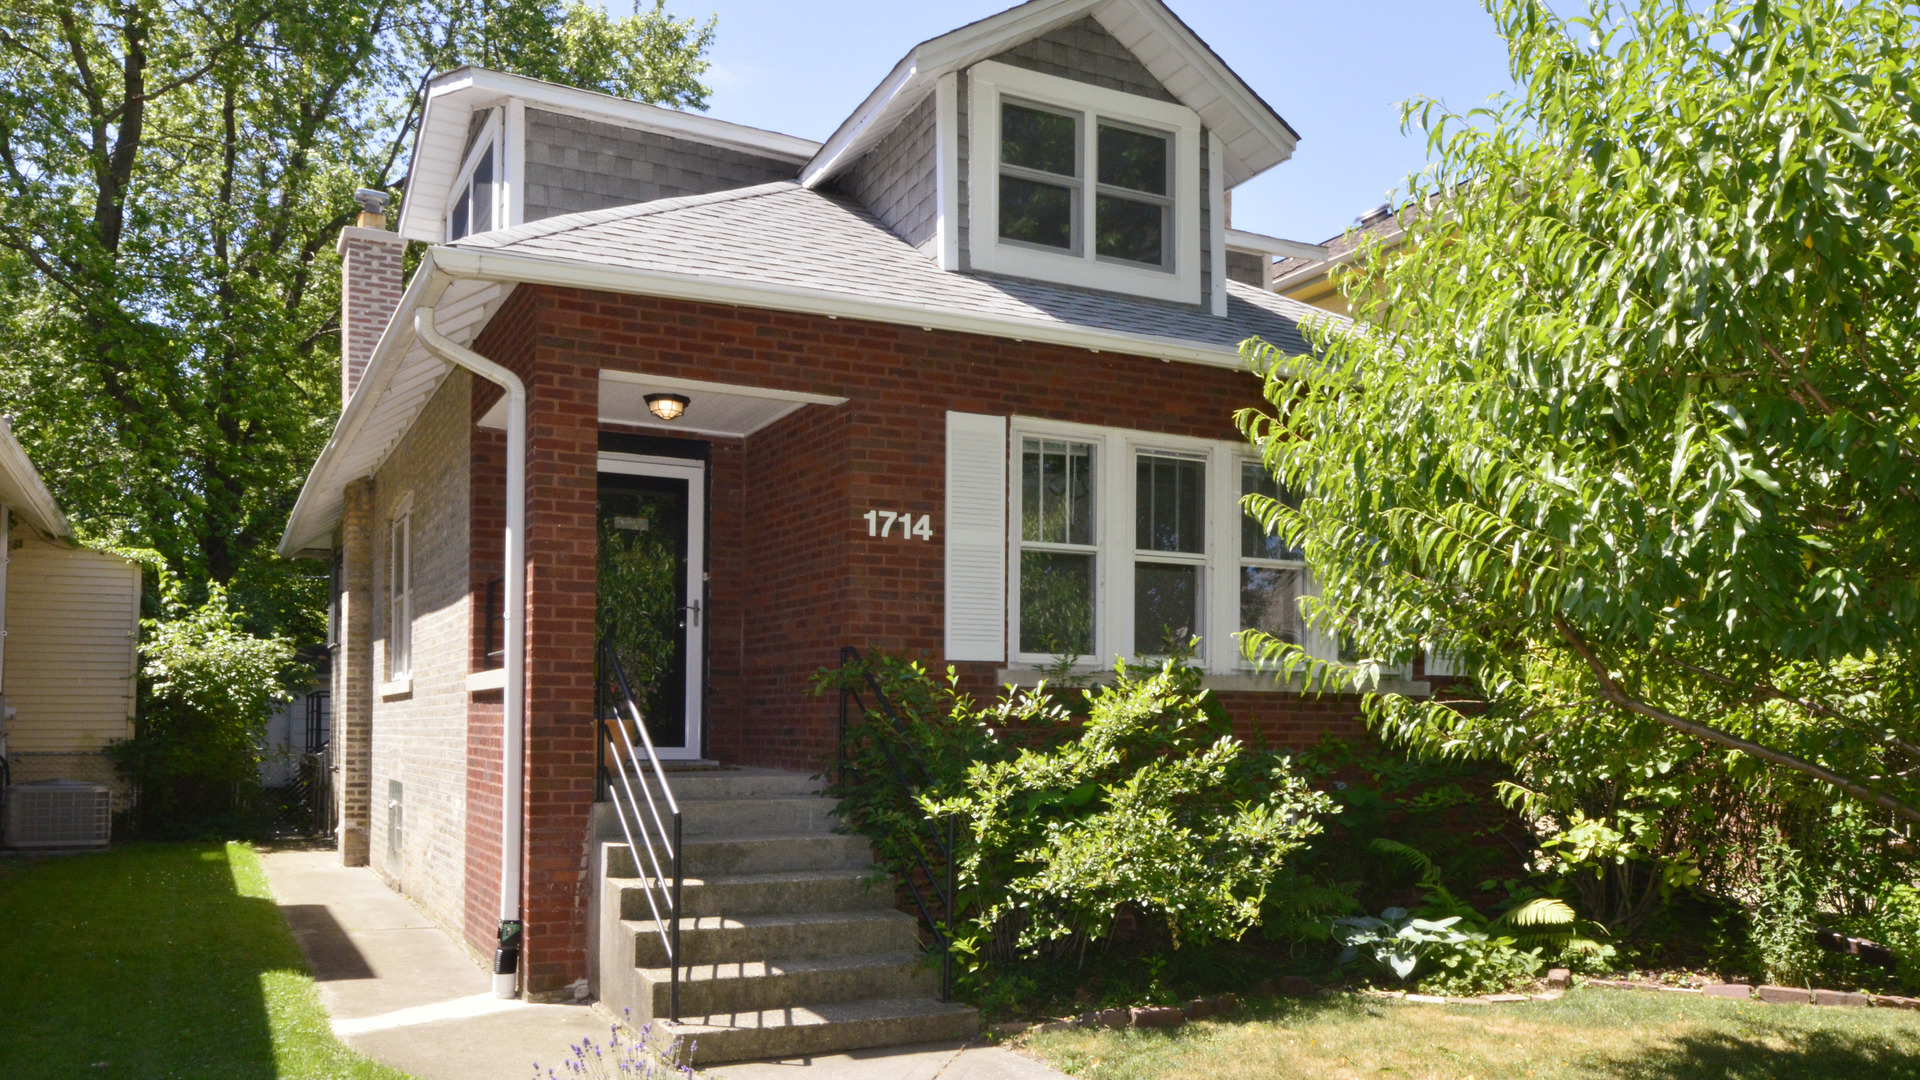 1714 Greenwood Street 60201 - One of Evanston Homes for Sale